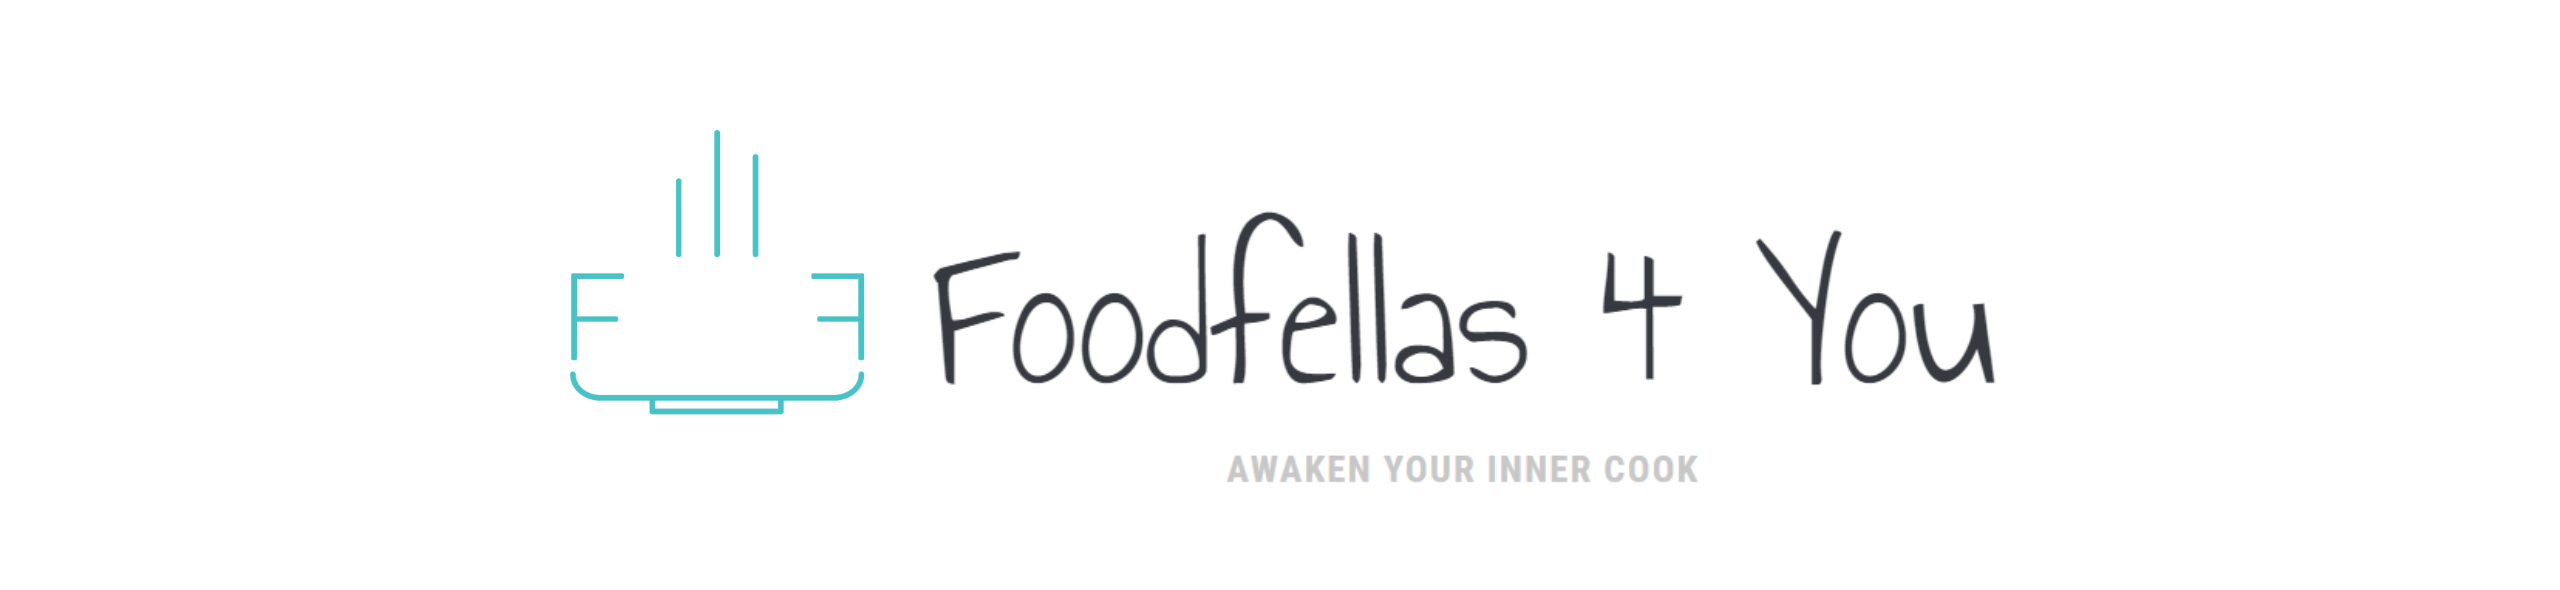 Foodfellas 4 You